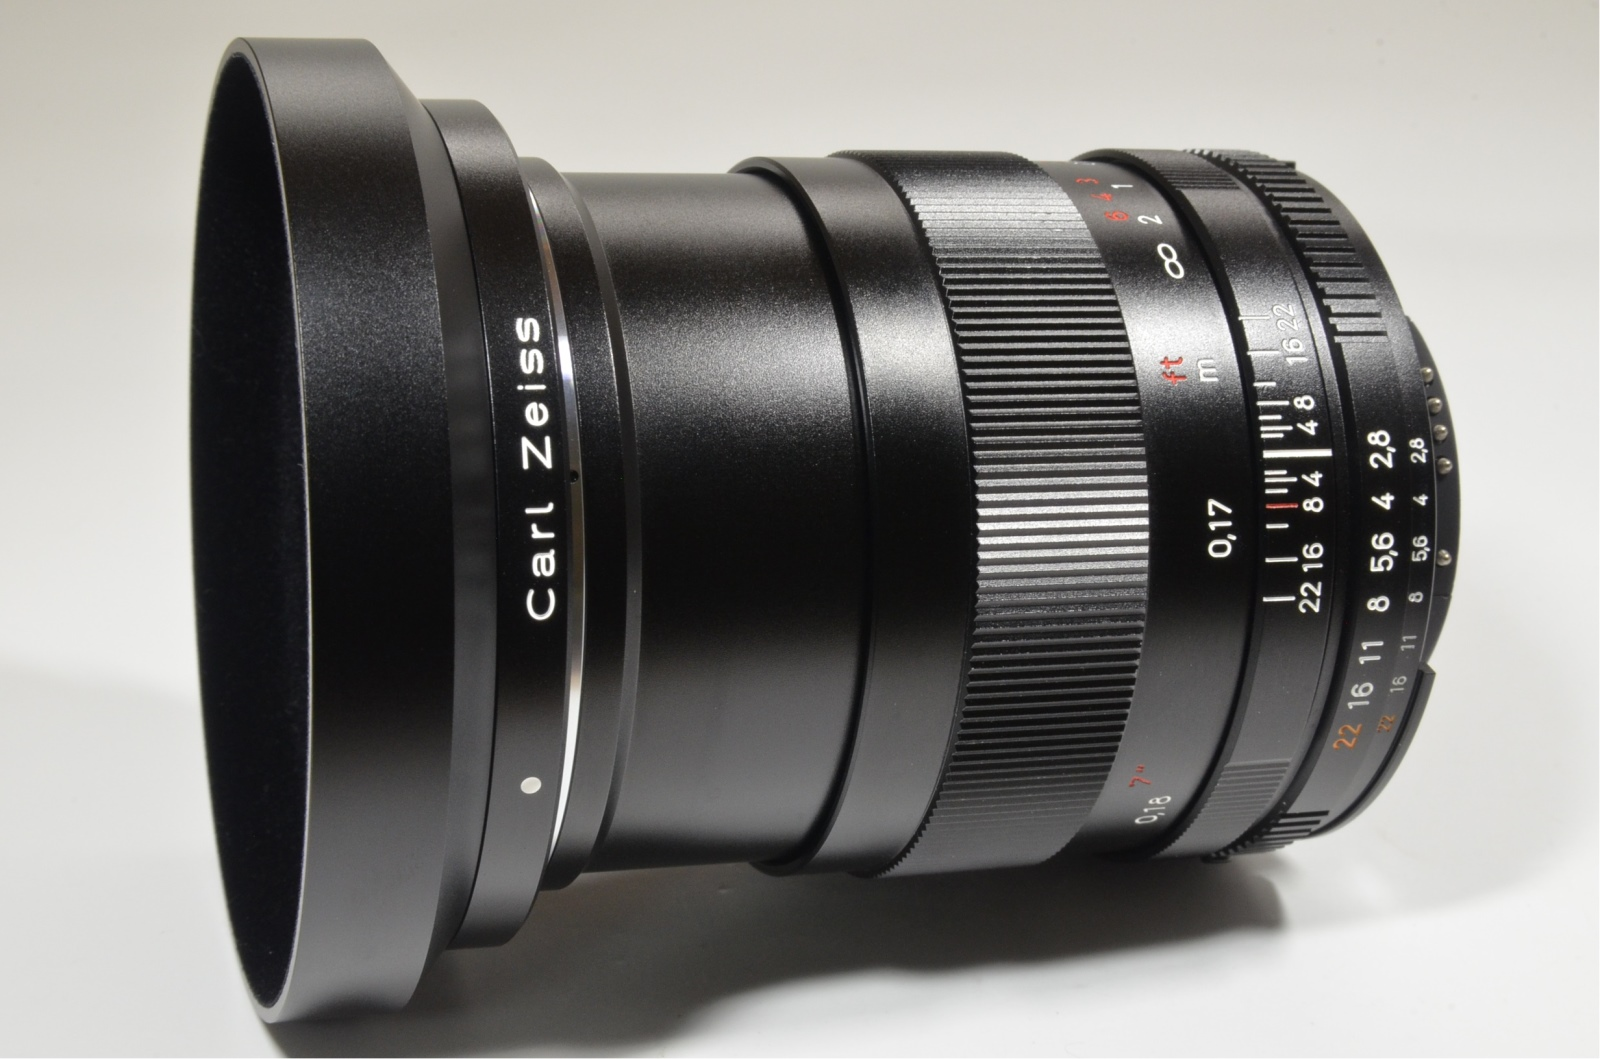 carl zeiss distagon t* 25mm f2.8 zf.2 for nikon from japan